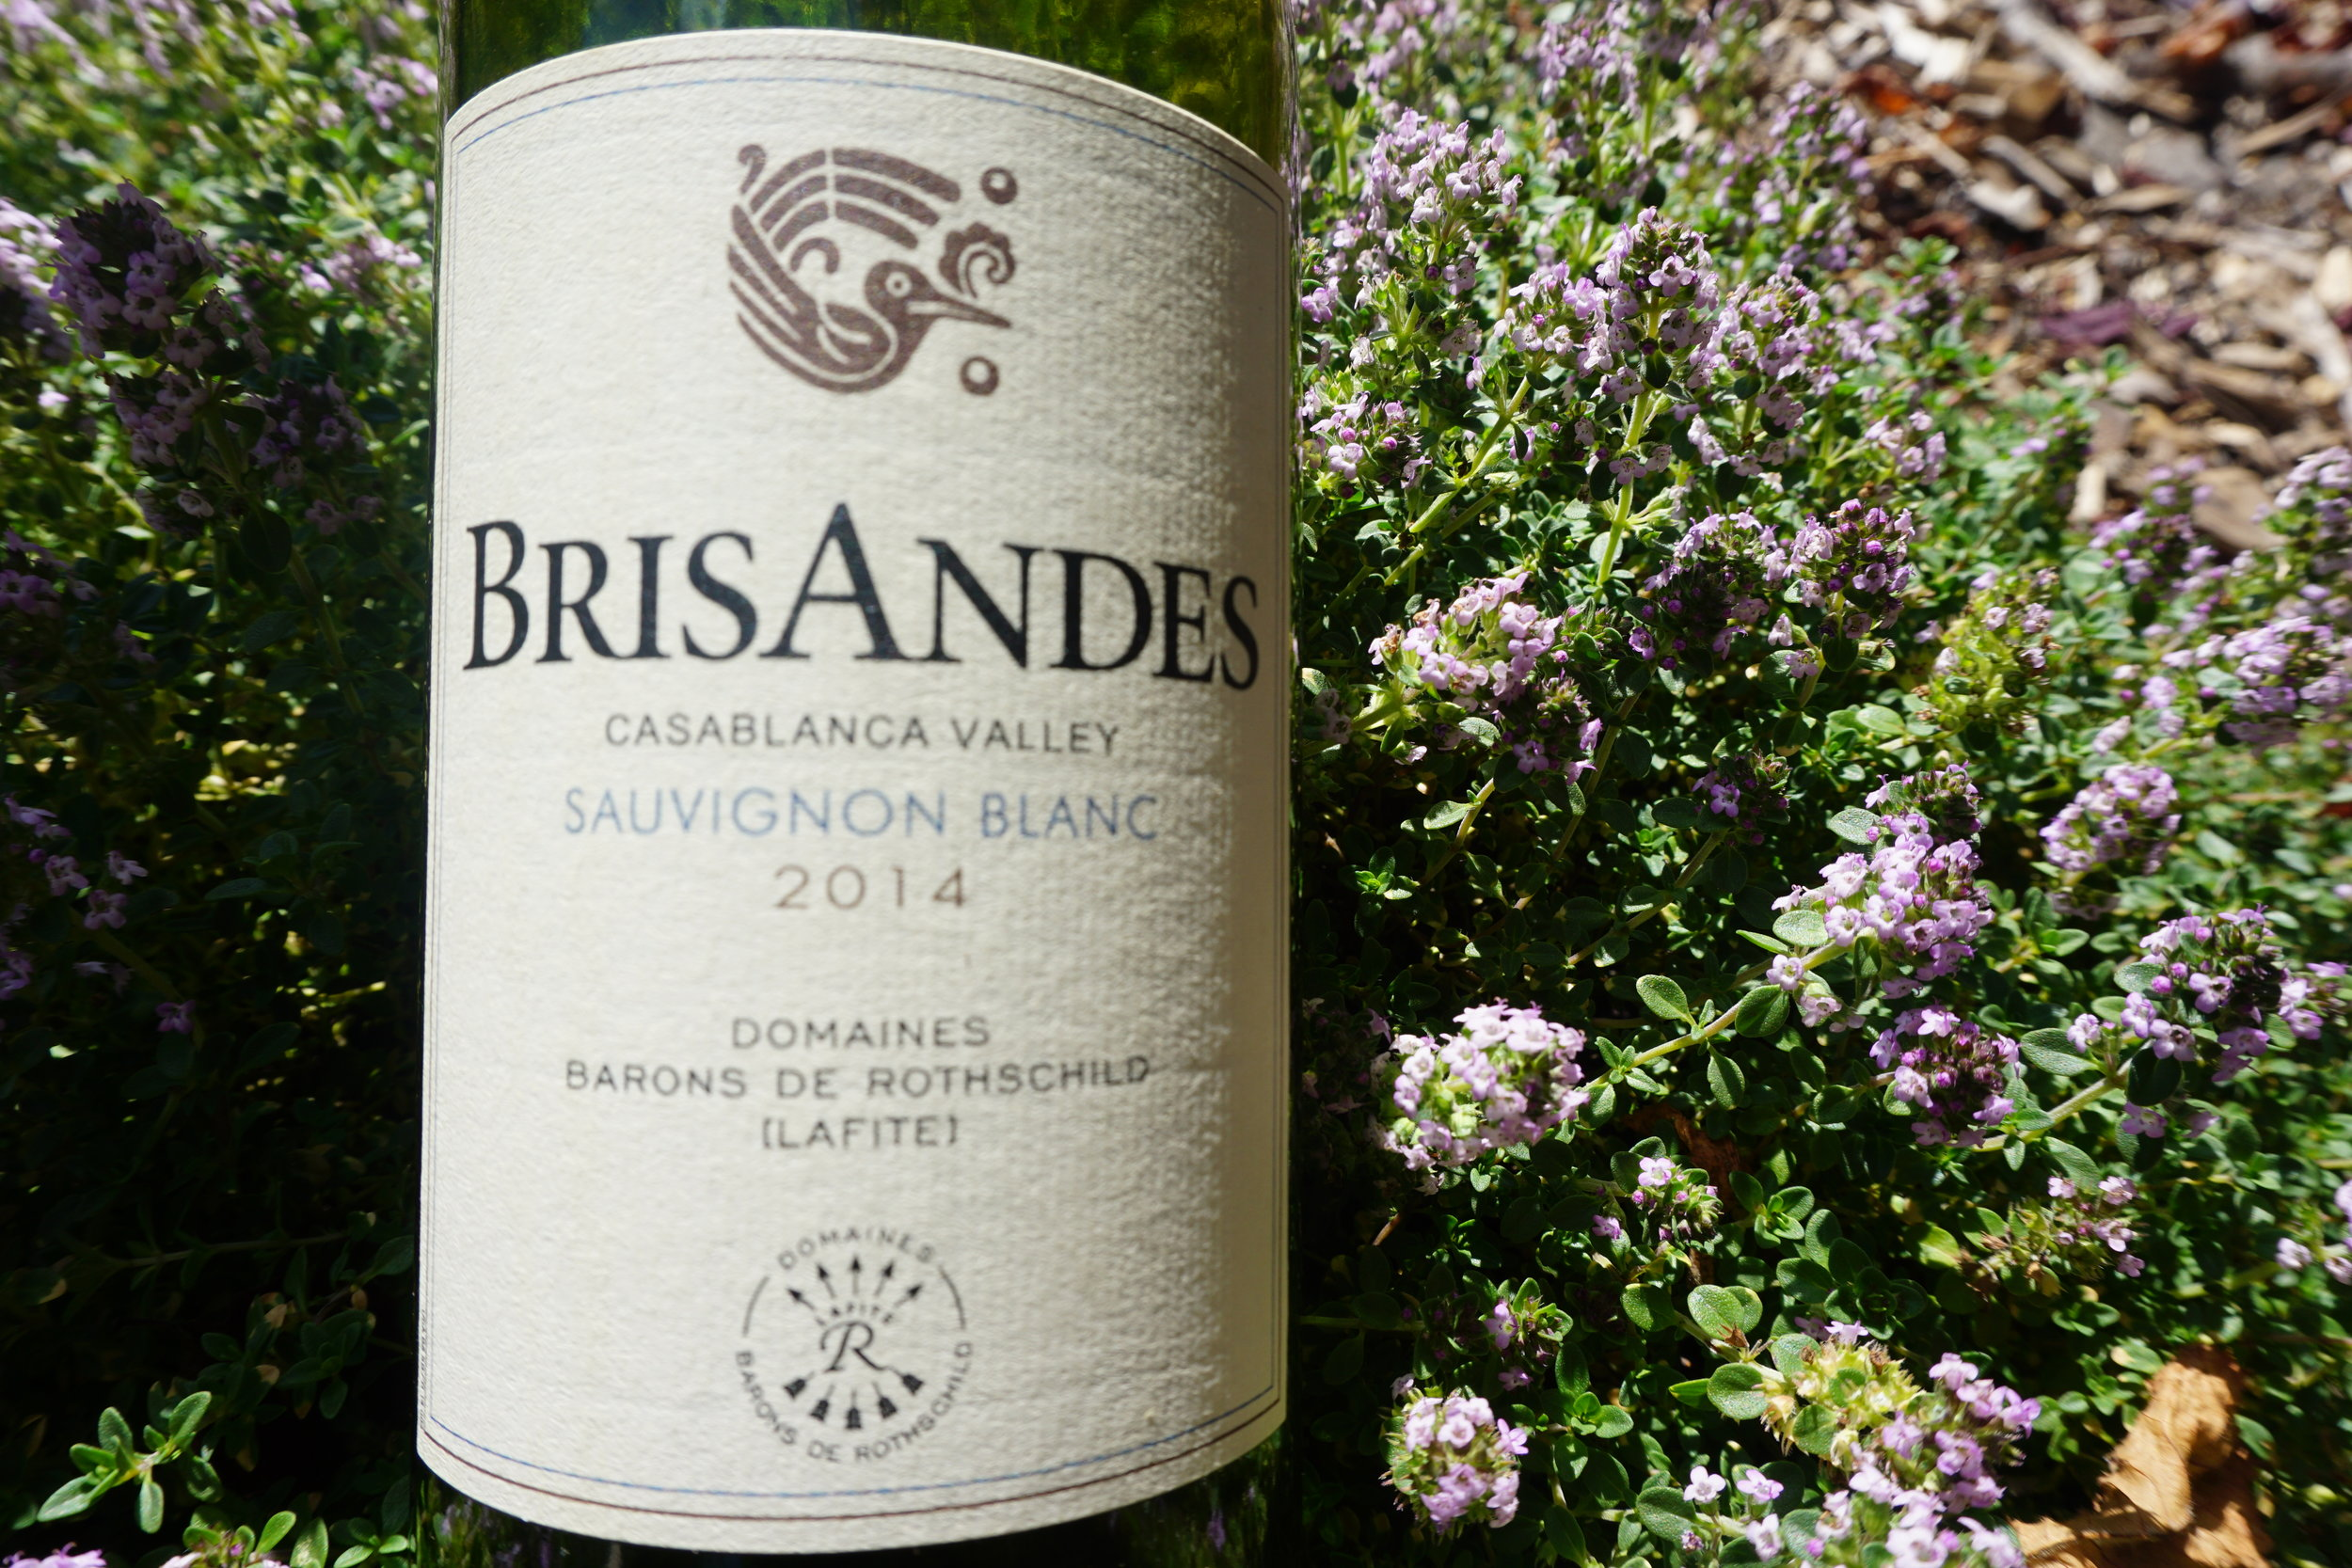 Brisandes, Casablanca Valley – 2014 Sauvignon Blanc - is an excellent value from Chile giving off more citrus than tropical notes. Viki Eierdam